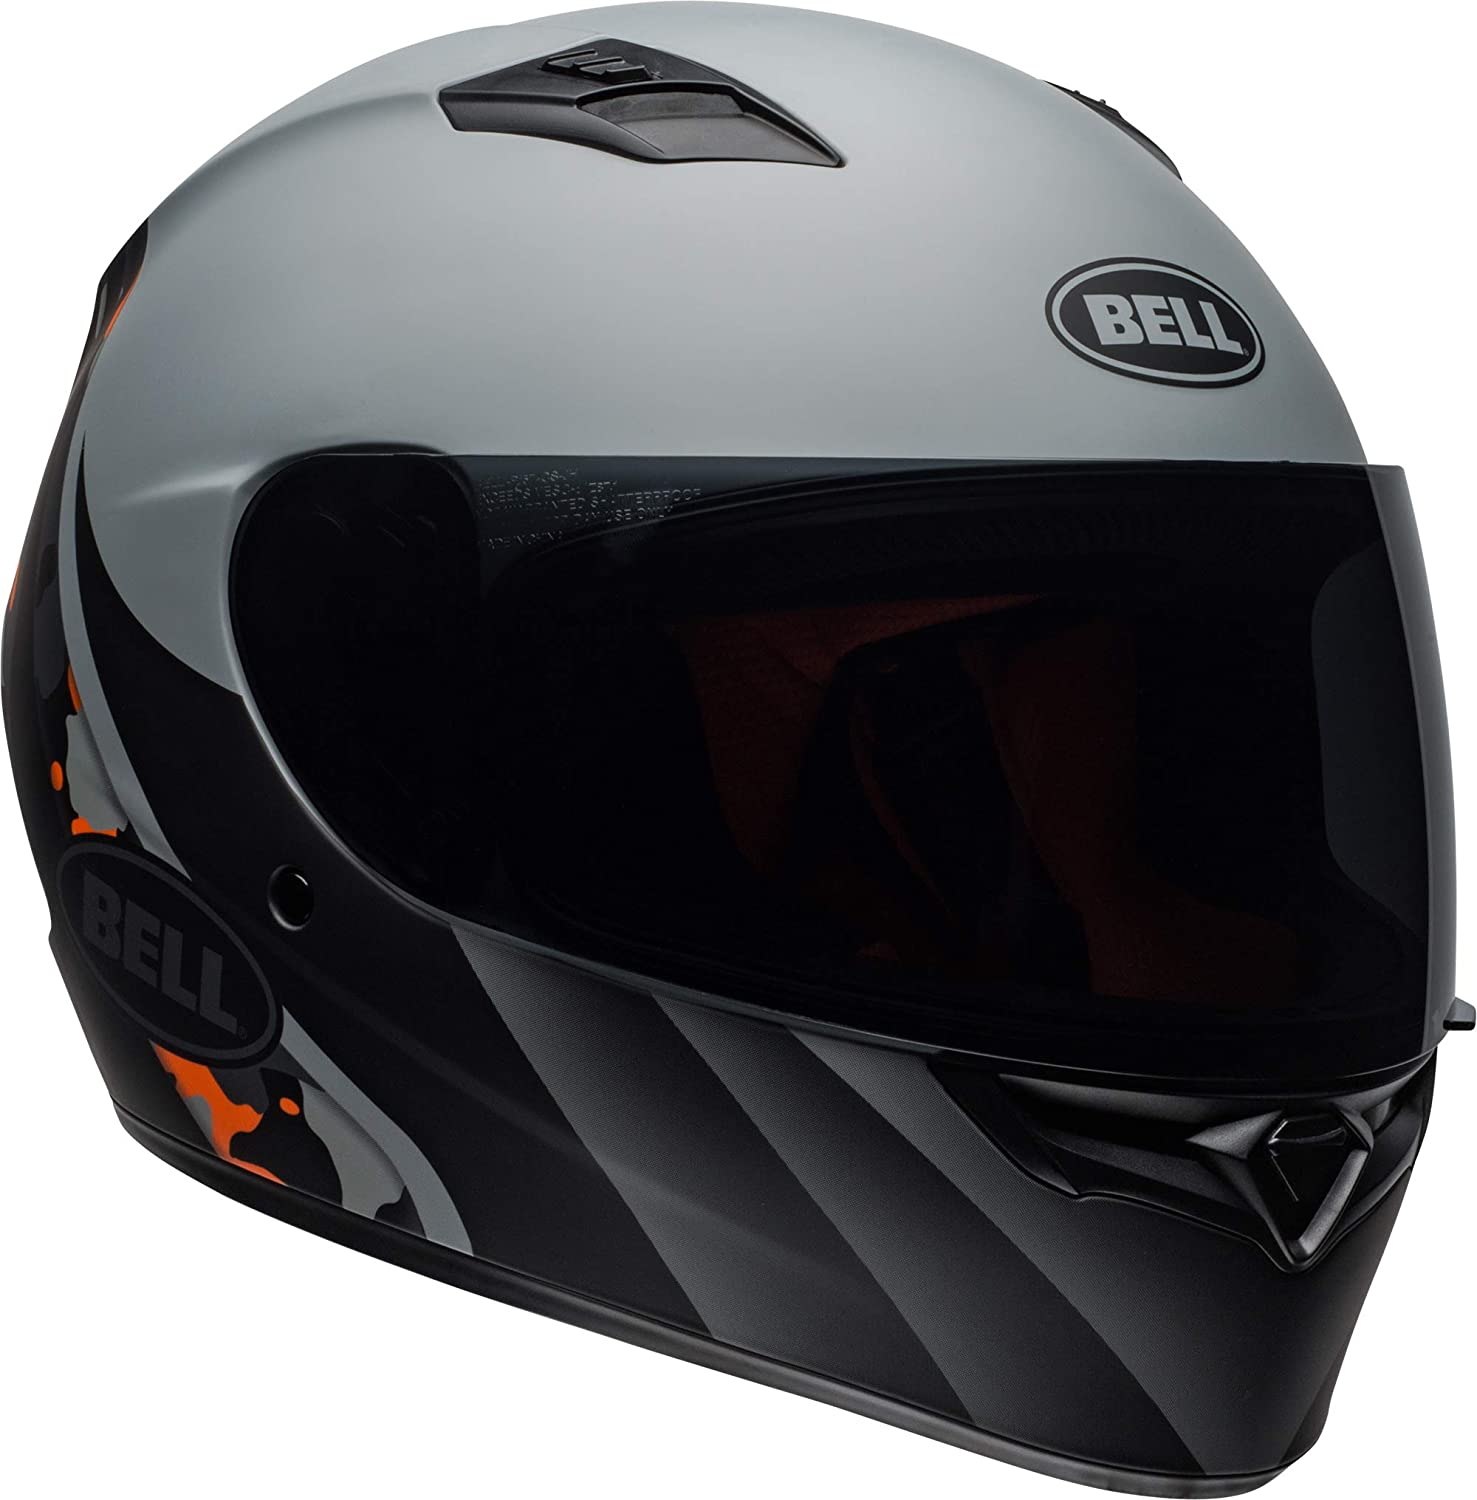 CAPACETE BELL QUALIFIER INTEGRITY CINZA FOSCO